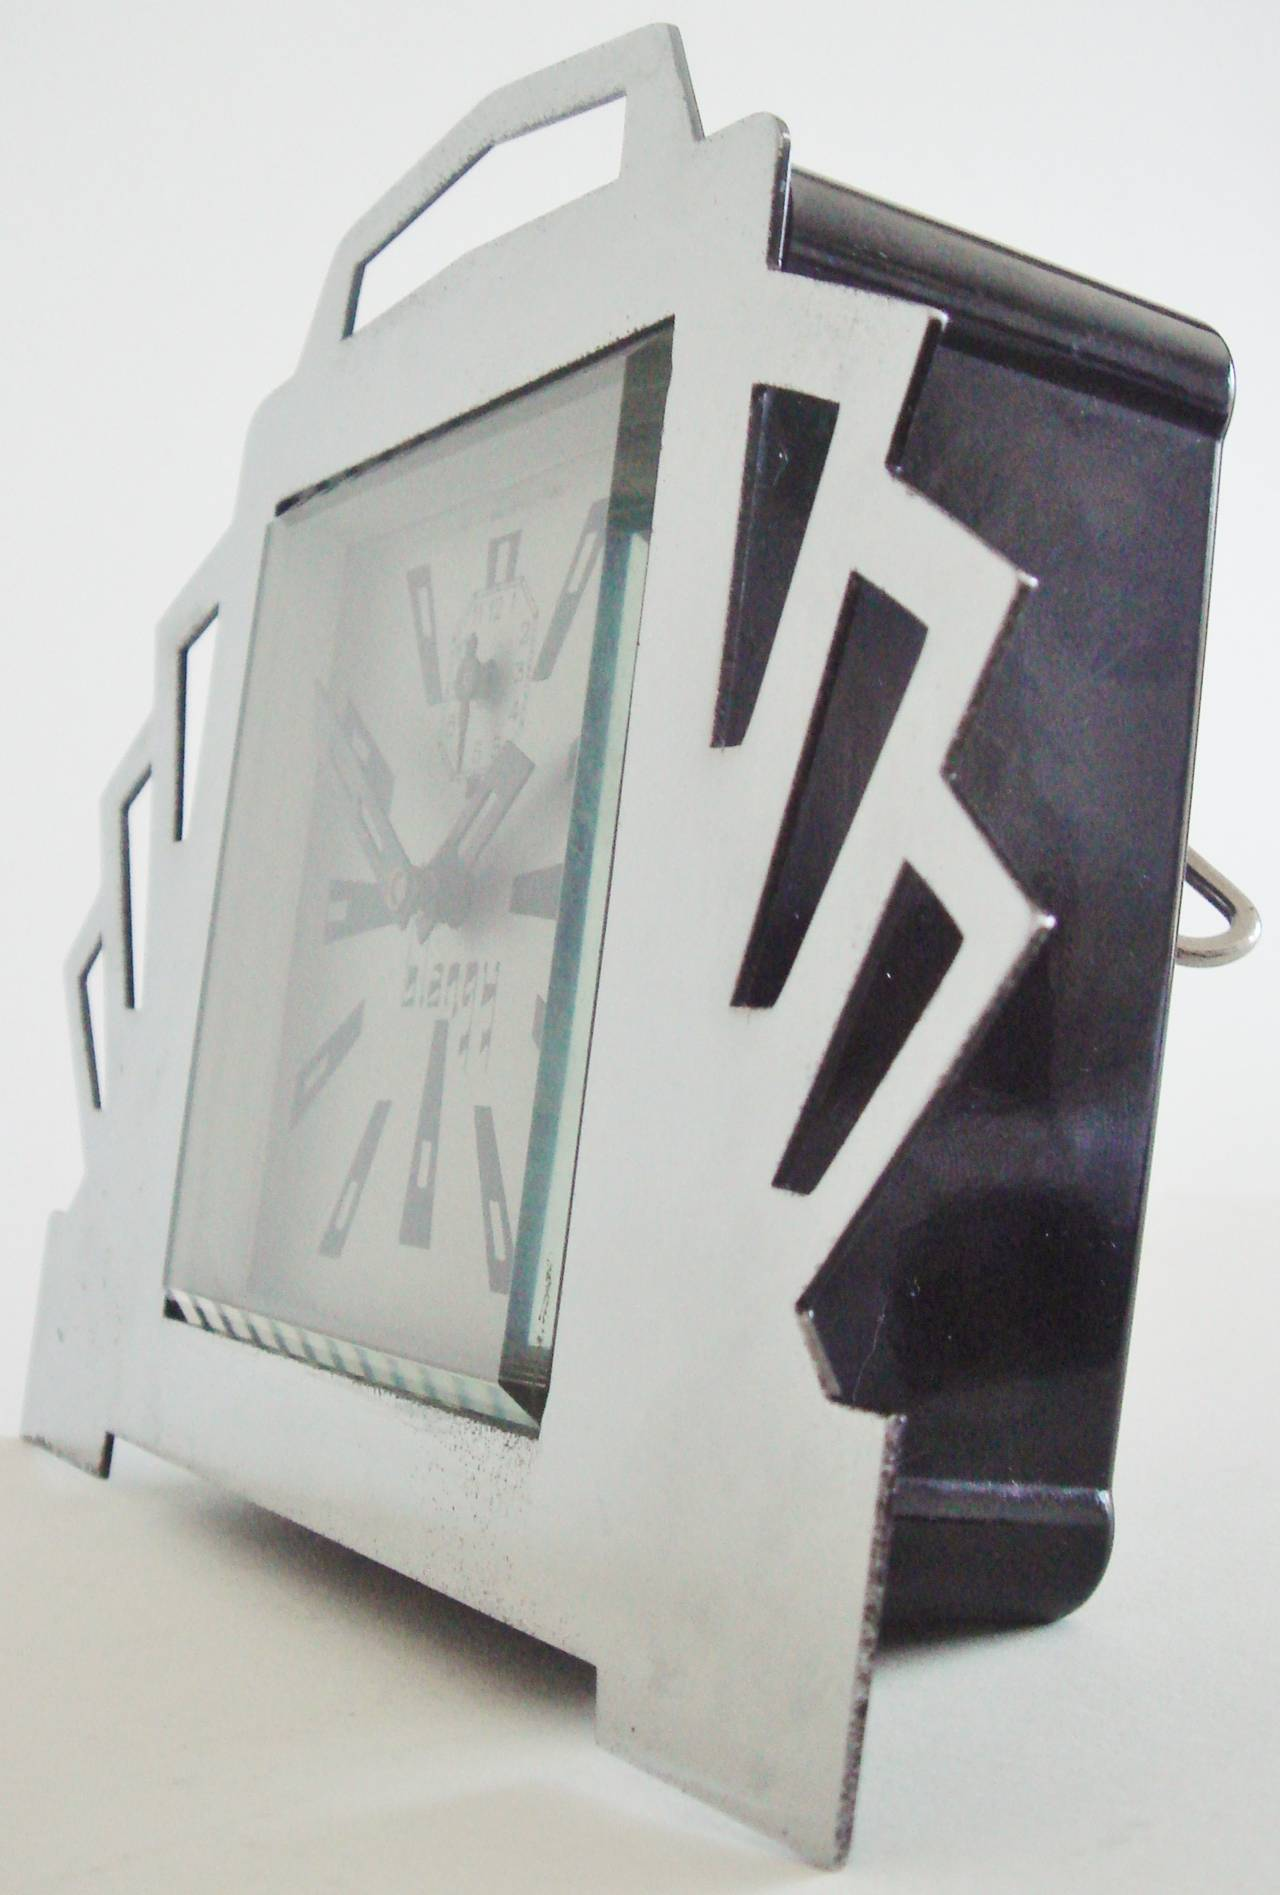 French Ultra Art Deco Styled Chrome and Black Mechanical Alarm Clock by Blangy In Good Condition For Sale In Port Hope, ON